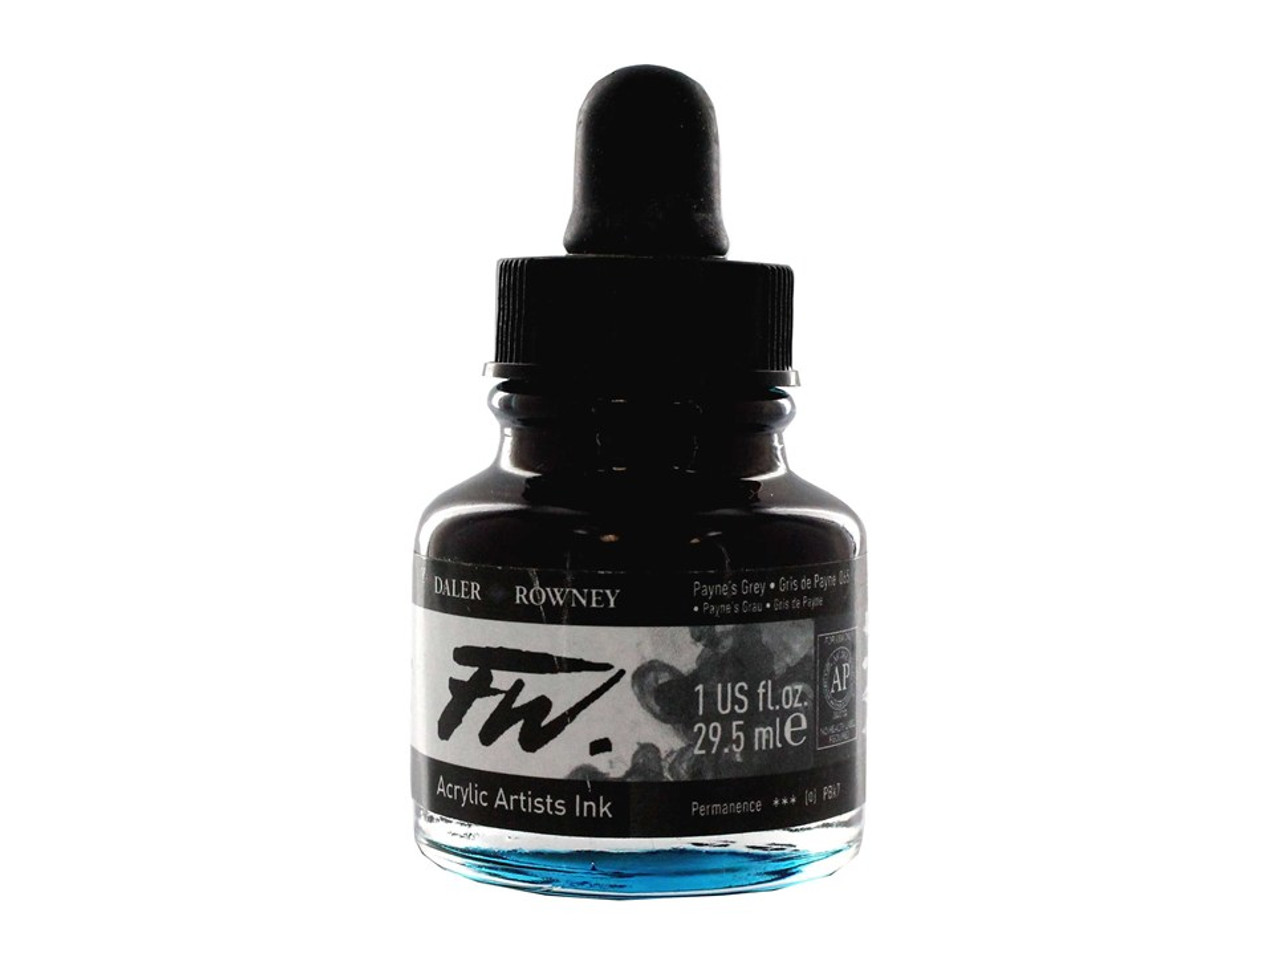 FW Acrylic Artists' Ink 29.5ml - Paynes Grey